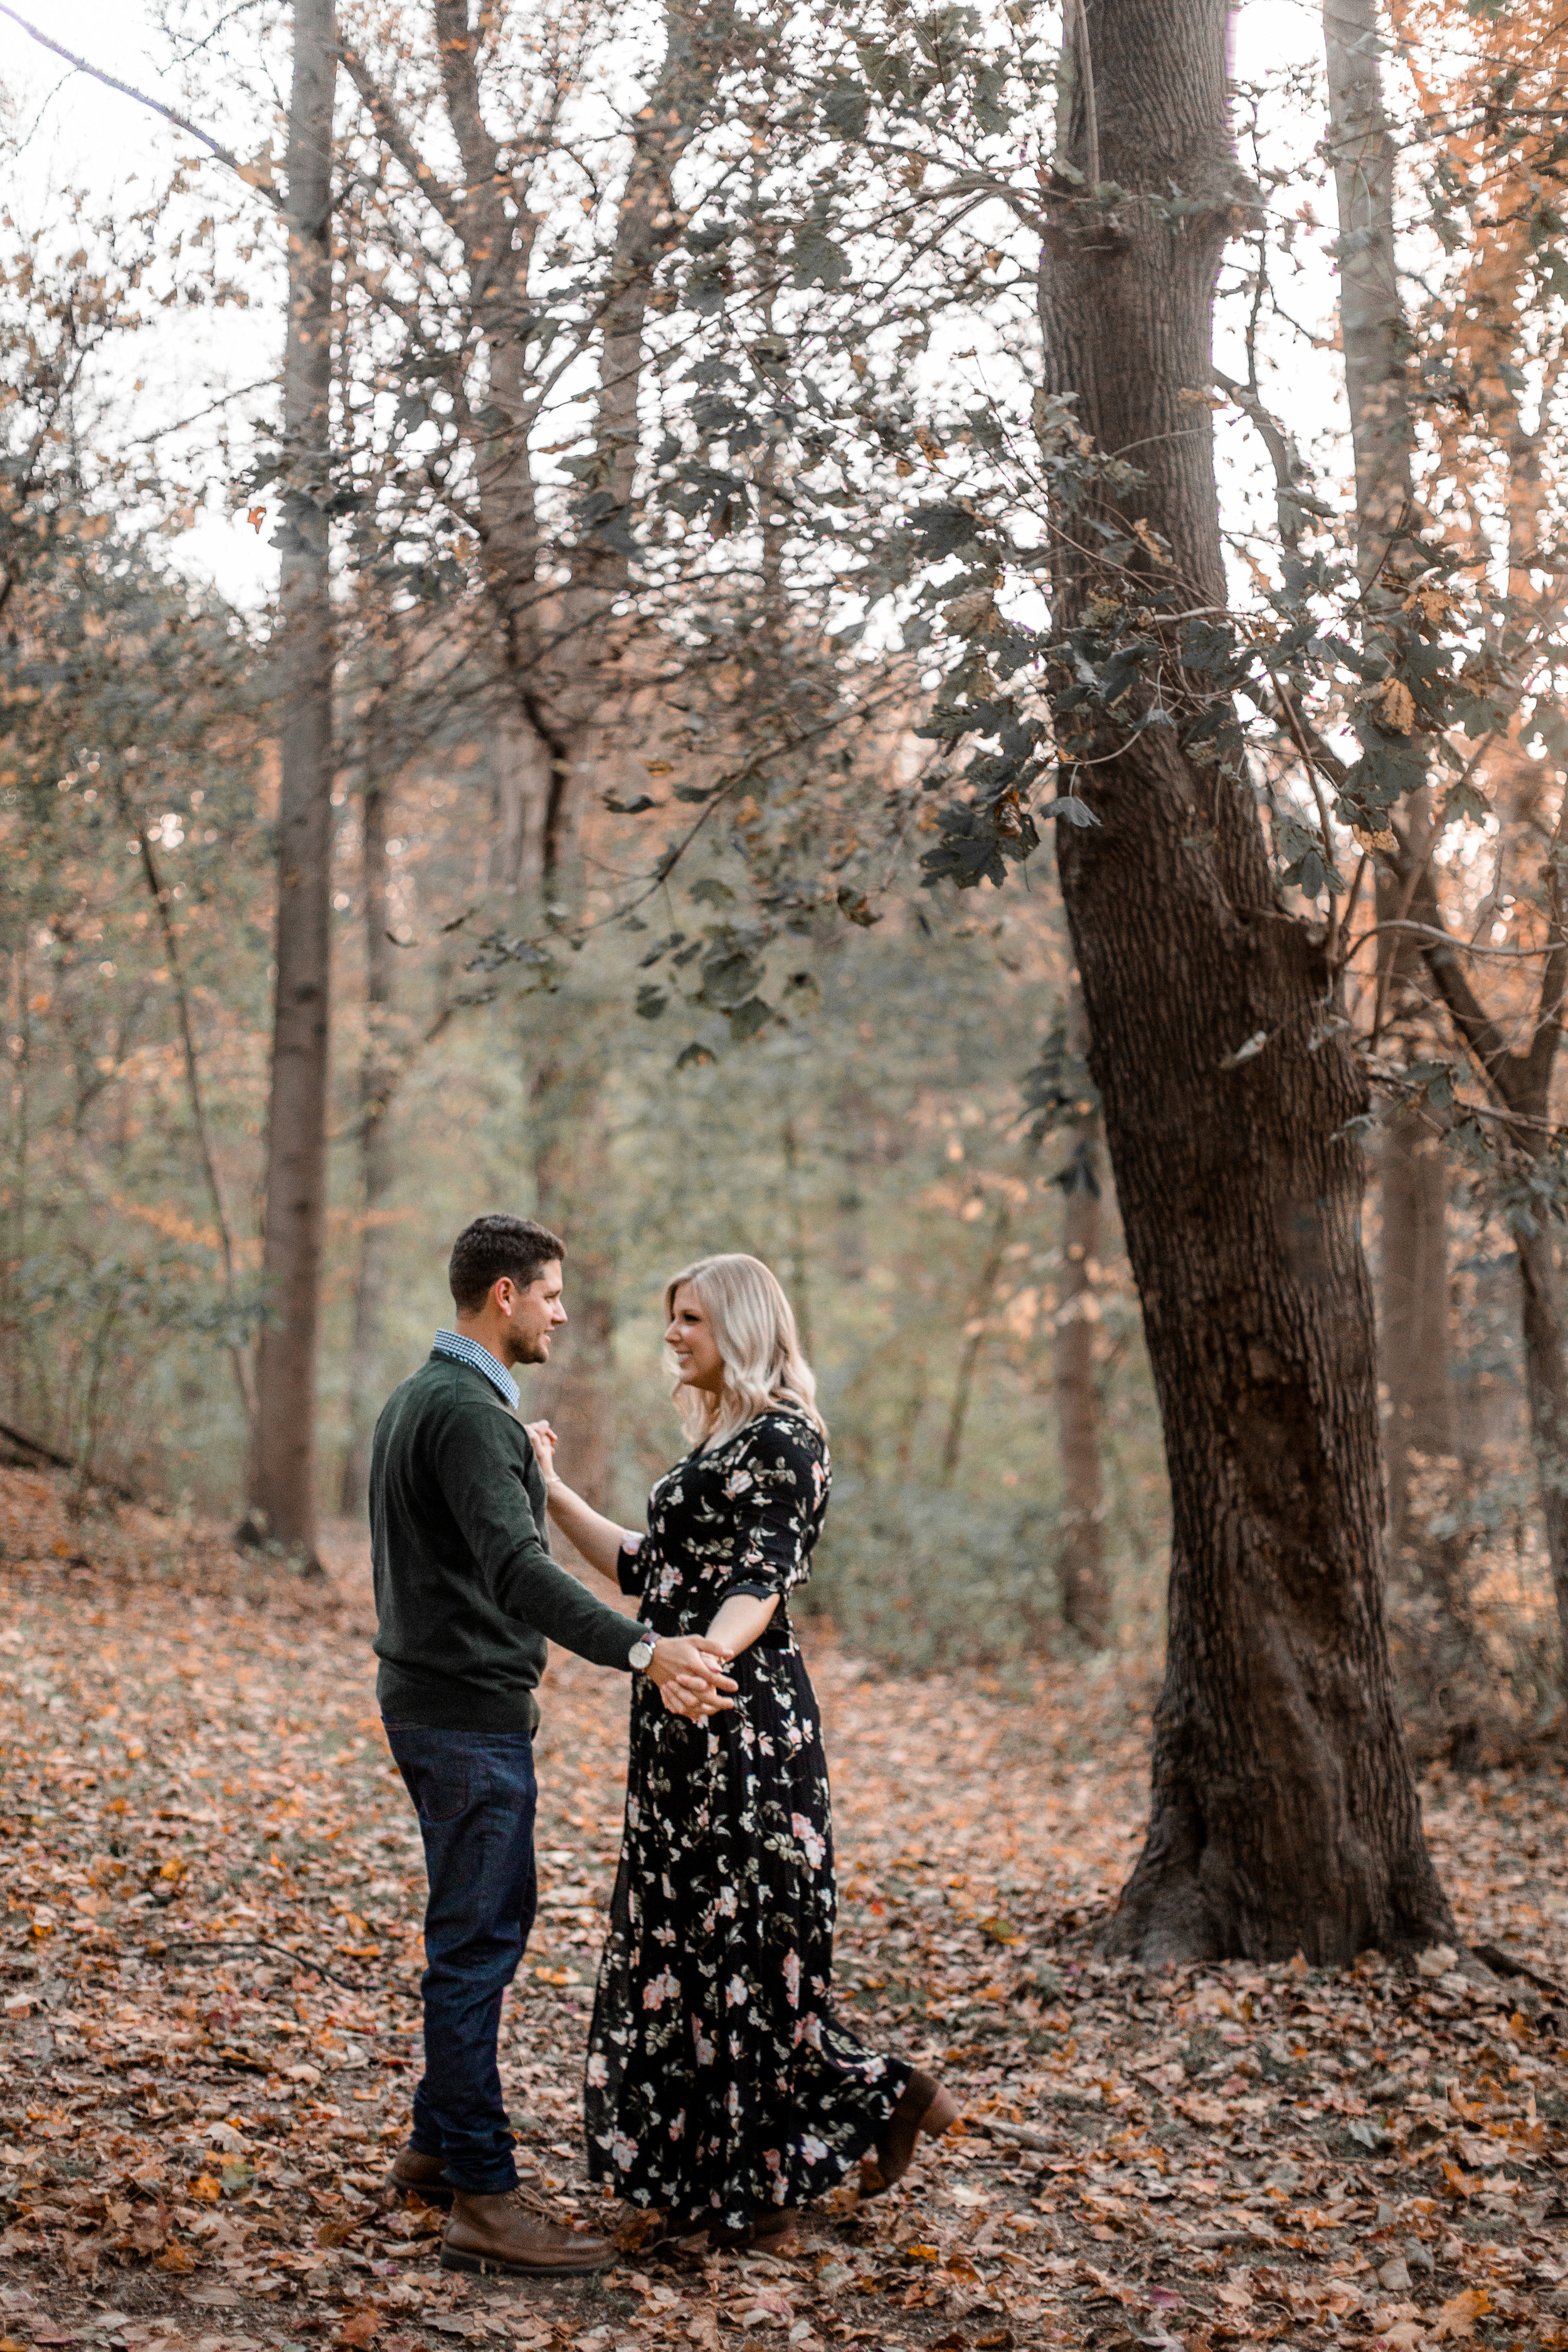 nicole-daacke-photography-carefree-bohemian-lancaster-pa-pennsylvania-engagement-photos-engagement-session-golden-sunset-adventure-session-in-lancaster-pa-lancaster-pa-outdoor-wedding-photographer-52.jpg